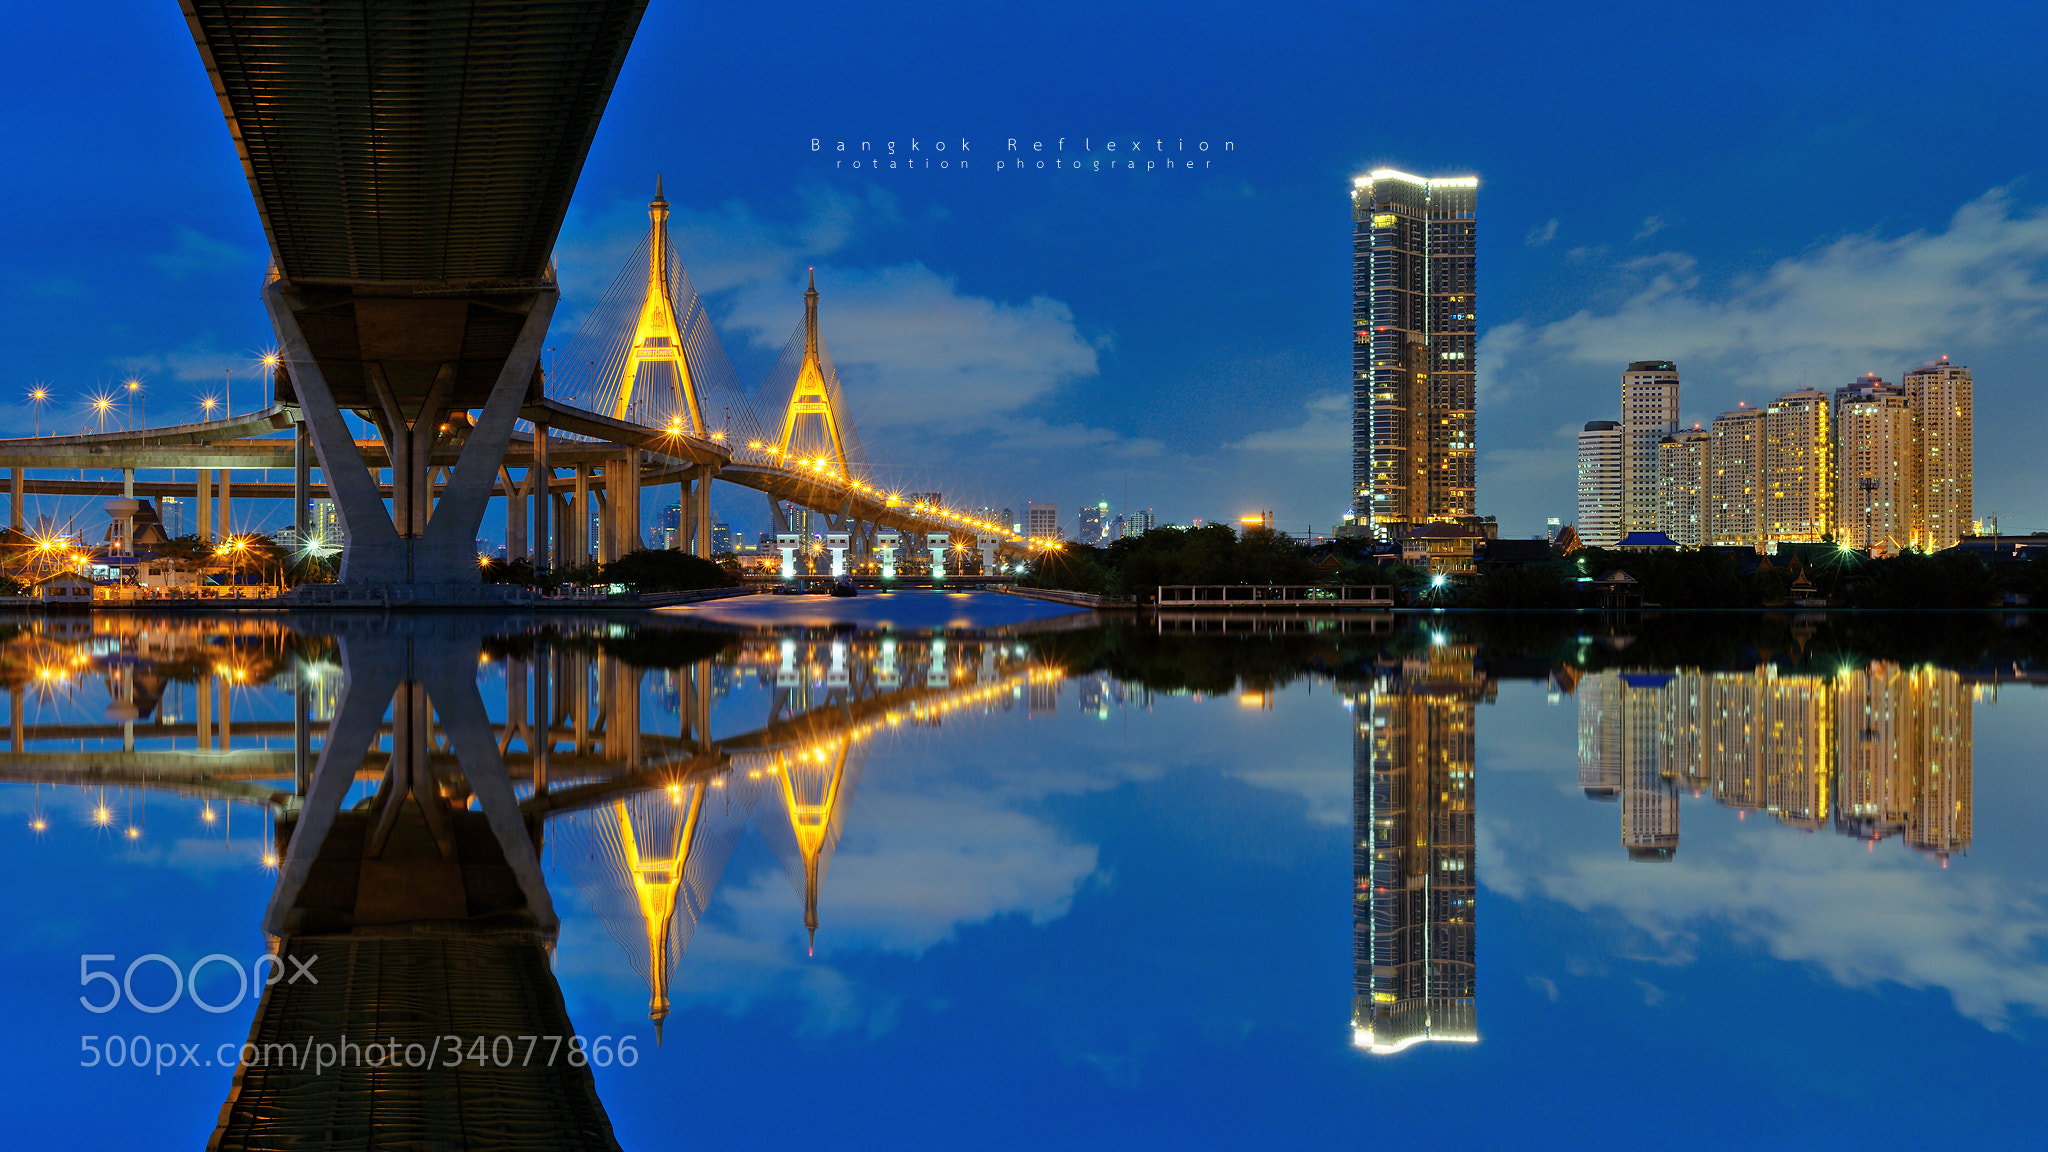 Photograph Bangkok Reflextion by Jirawas Teekayu on 500px